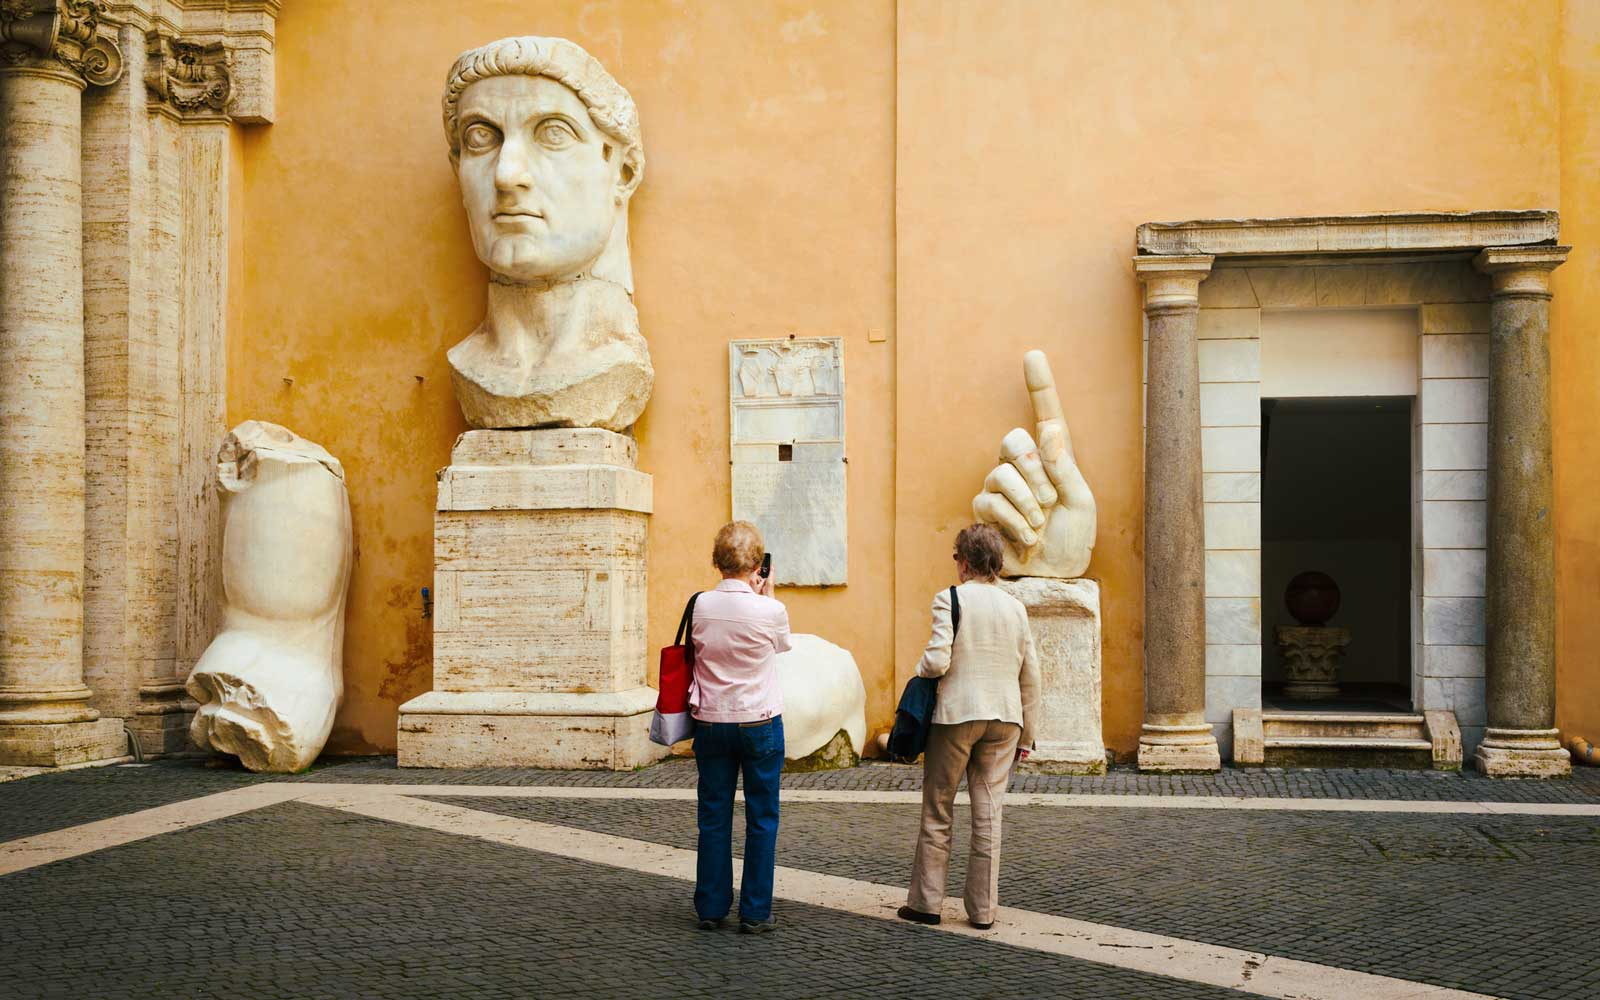 The Capitoline Museum. Courtyard of the Palazzo dei Conservatori.  Pieces of the colossal statue of the Emperor Constantine.   The Historic Centre of Rome is a UNESCO World Heritage Site.